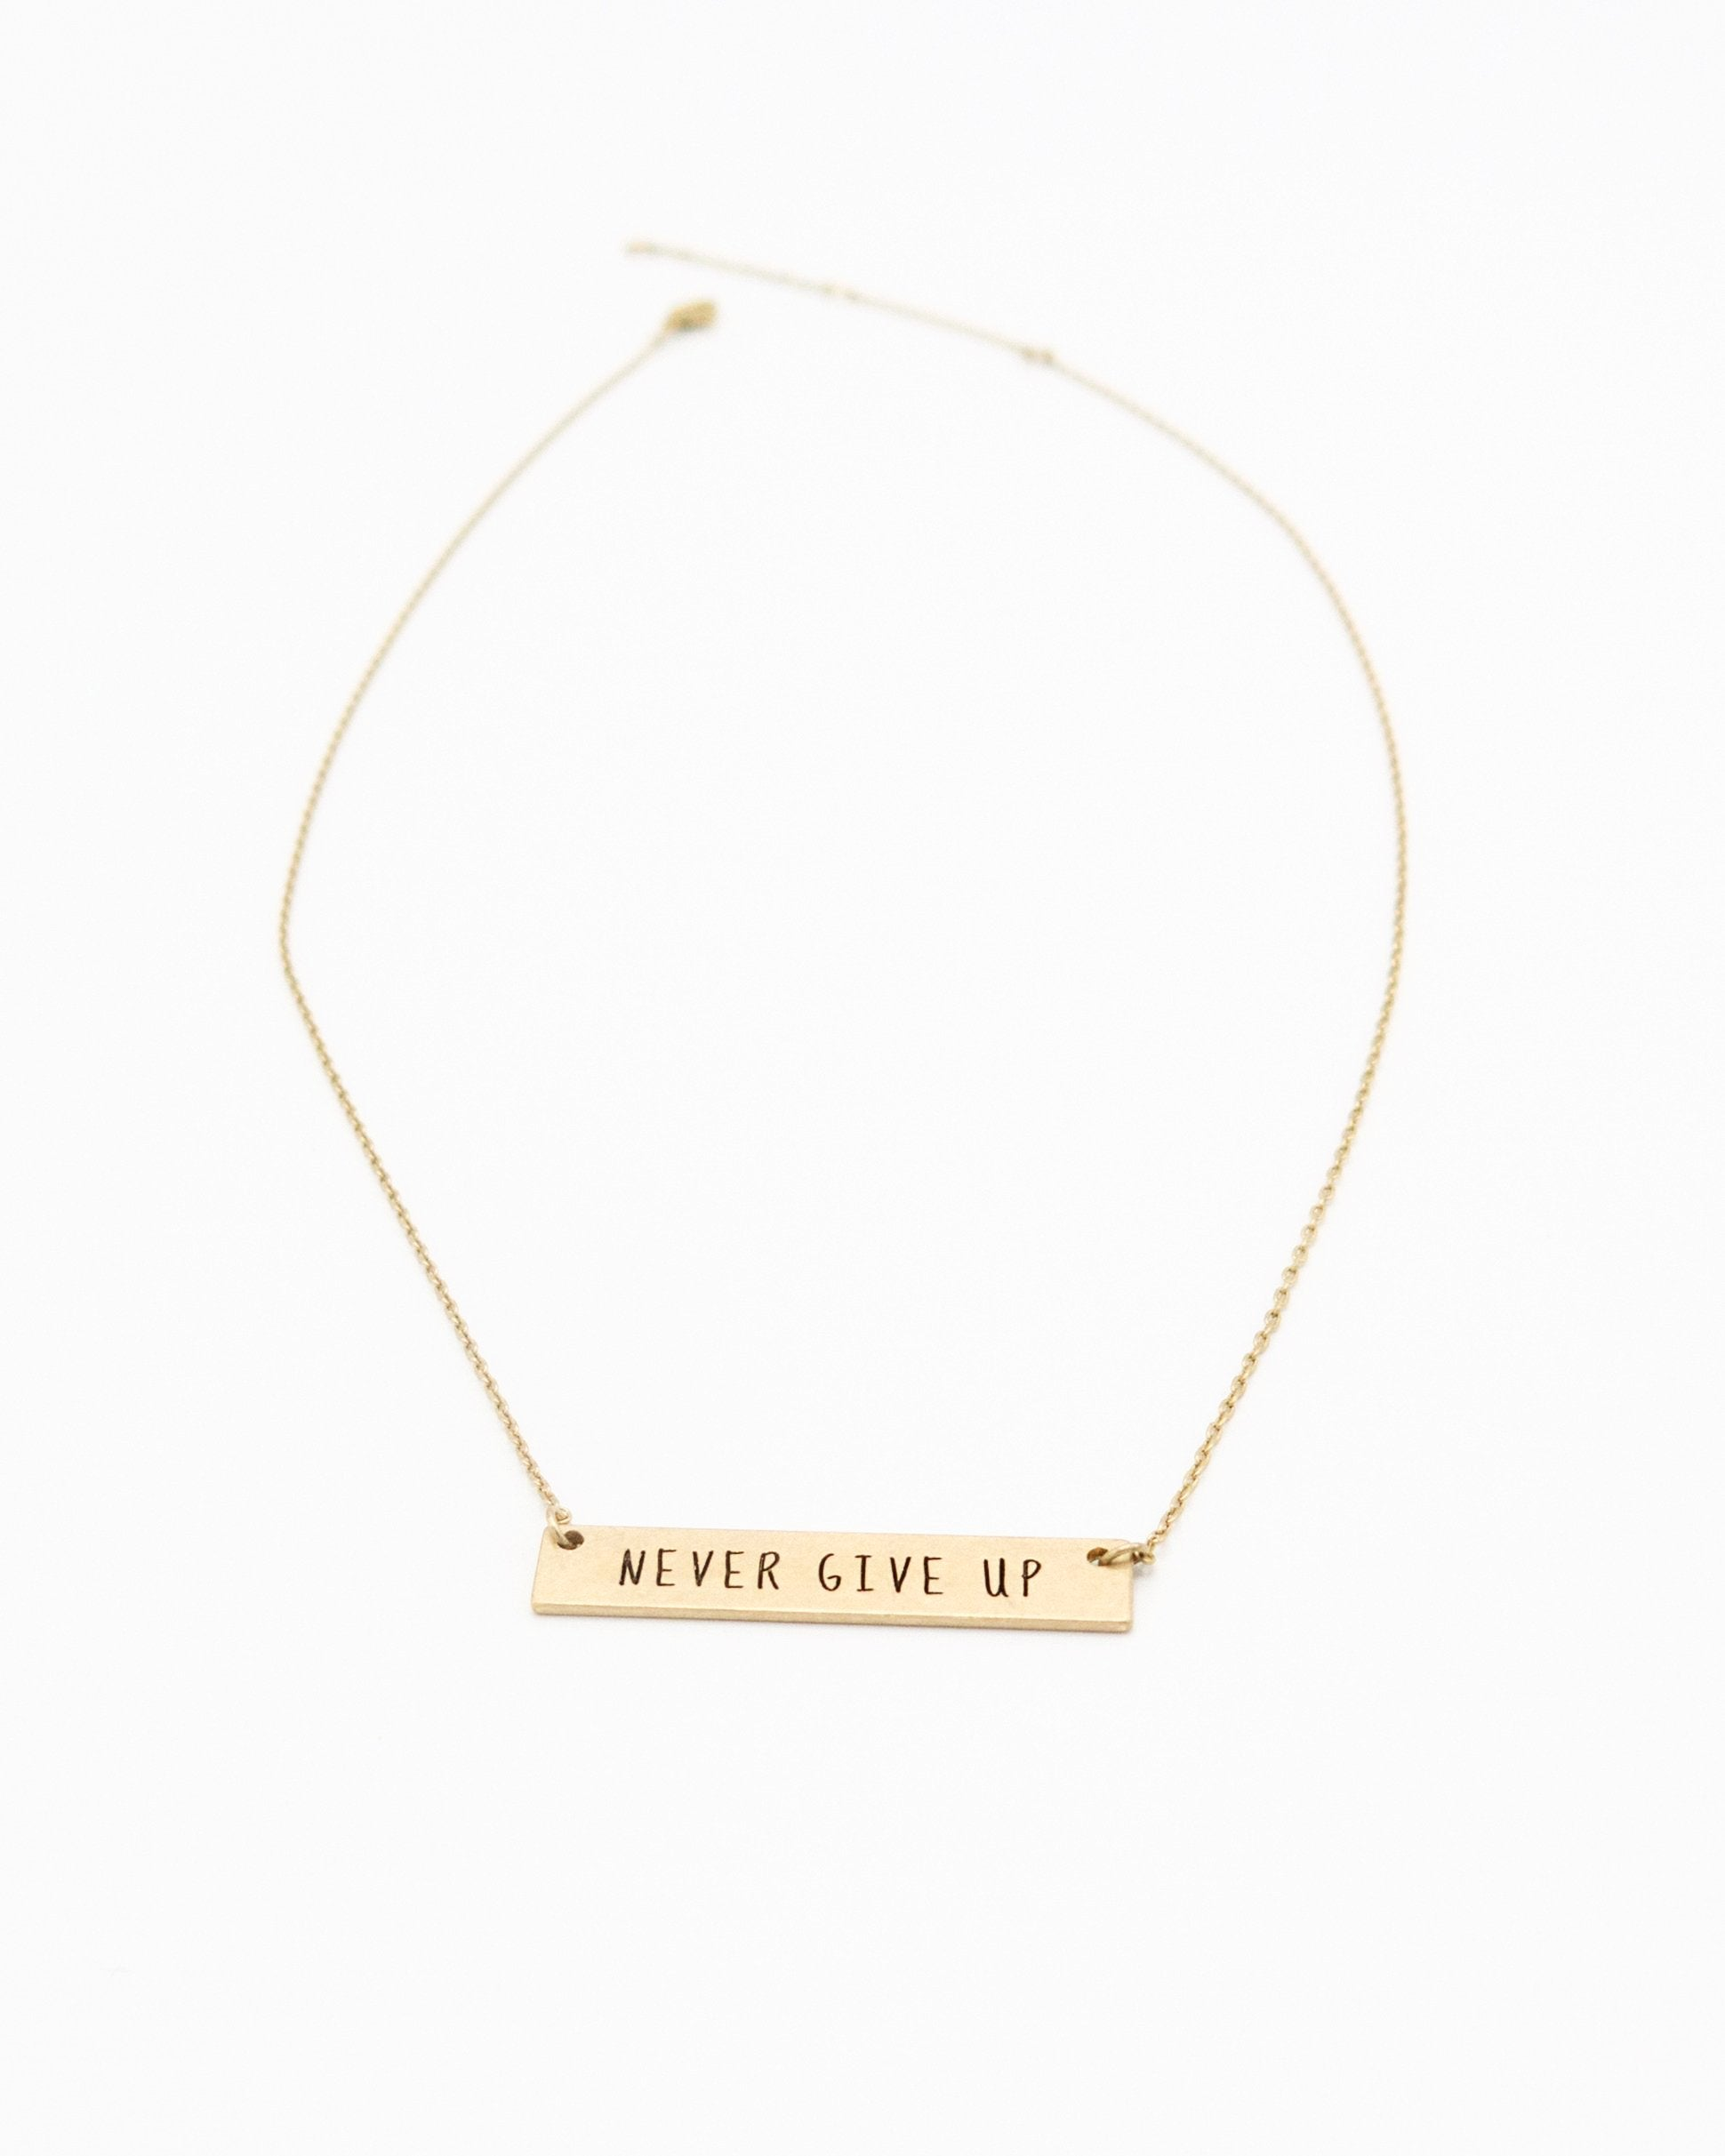 Never Give Up Inspirational Bar Necklace in gold